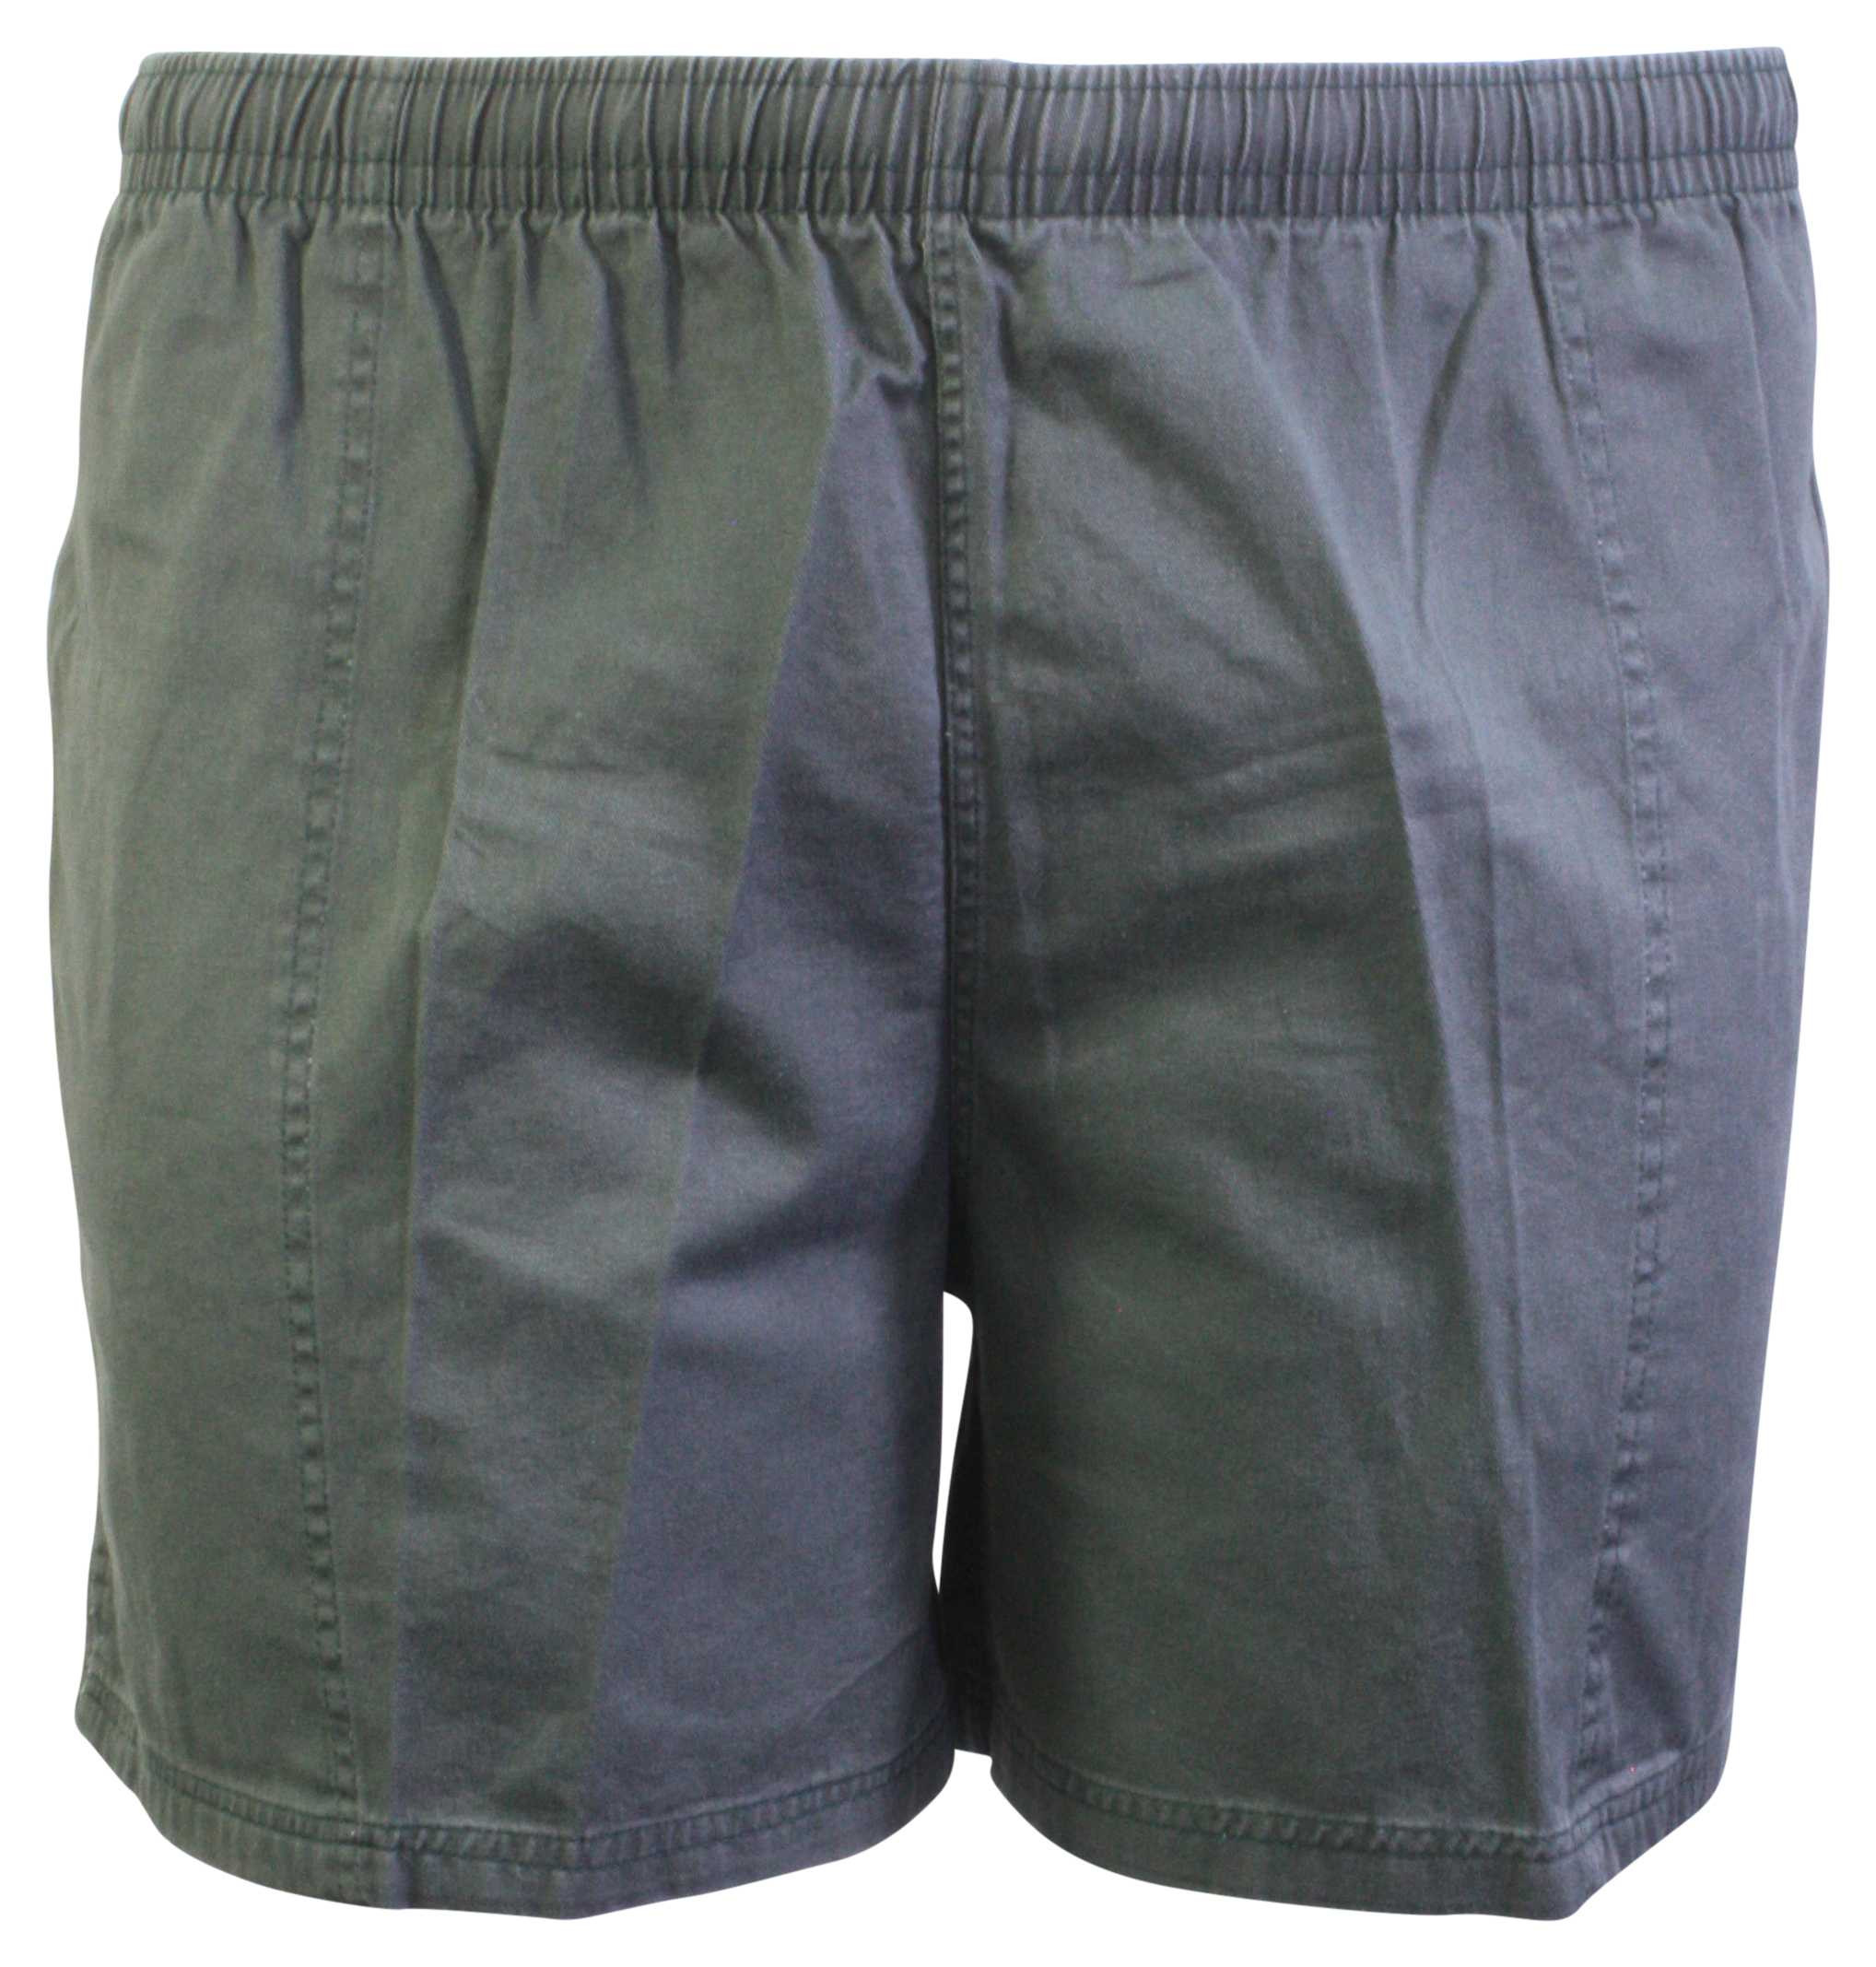 STERLING GREEN RUGBY SHORTS